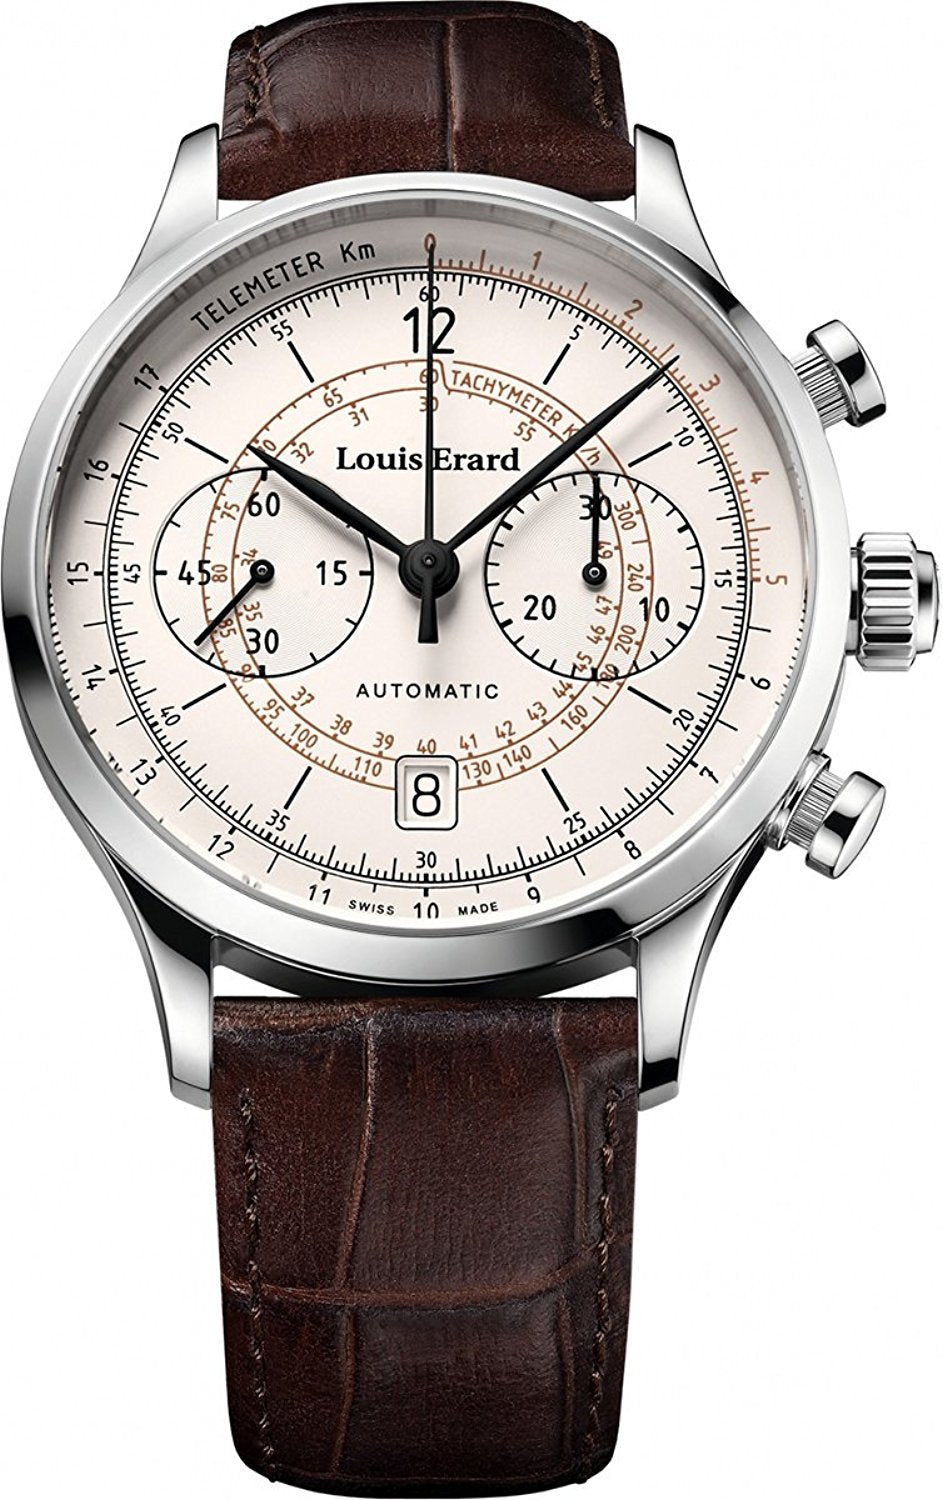 Louis Erard 1931 Collection Swiss Automatic White Dial Telemeter Men's Watch 71245AA01.BDC21